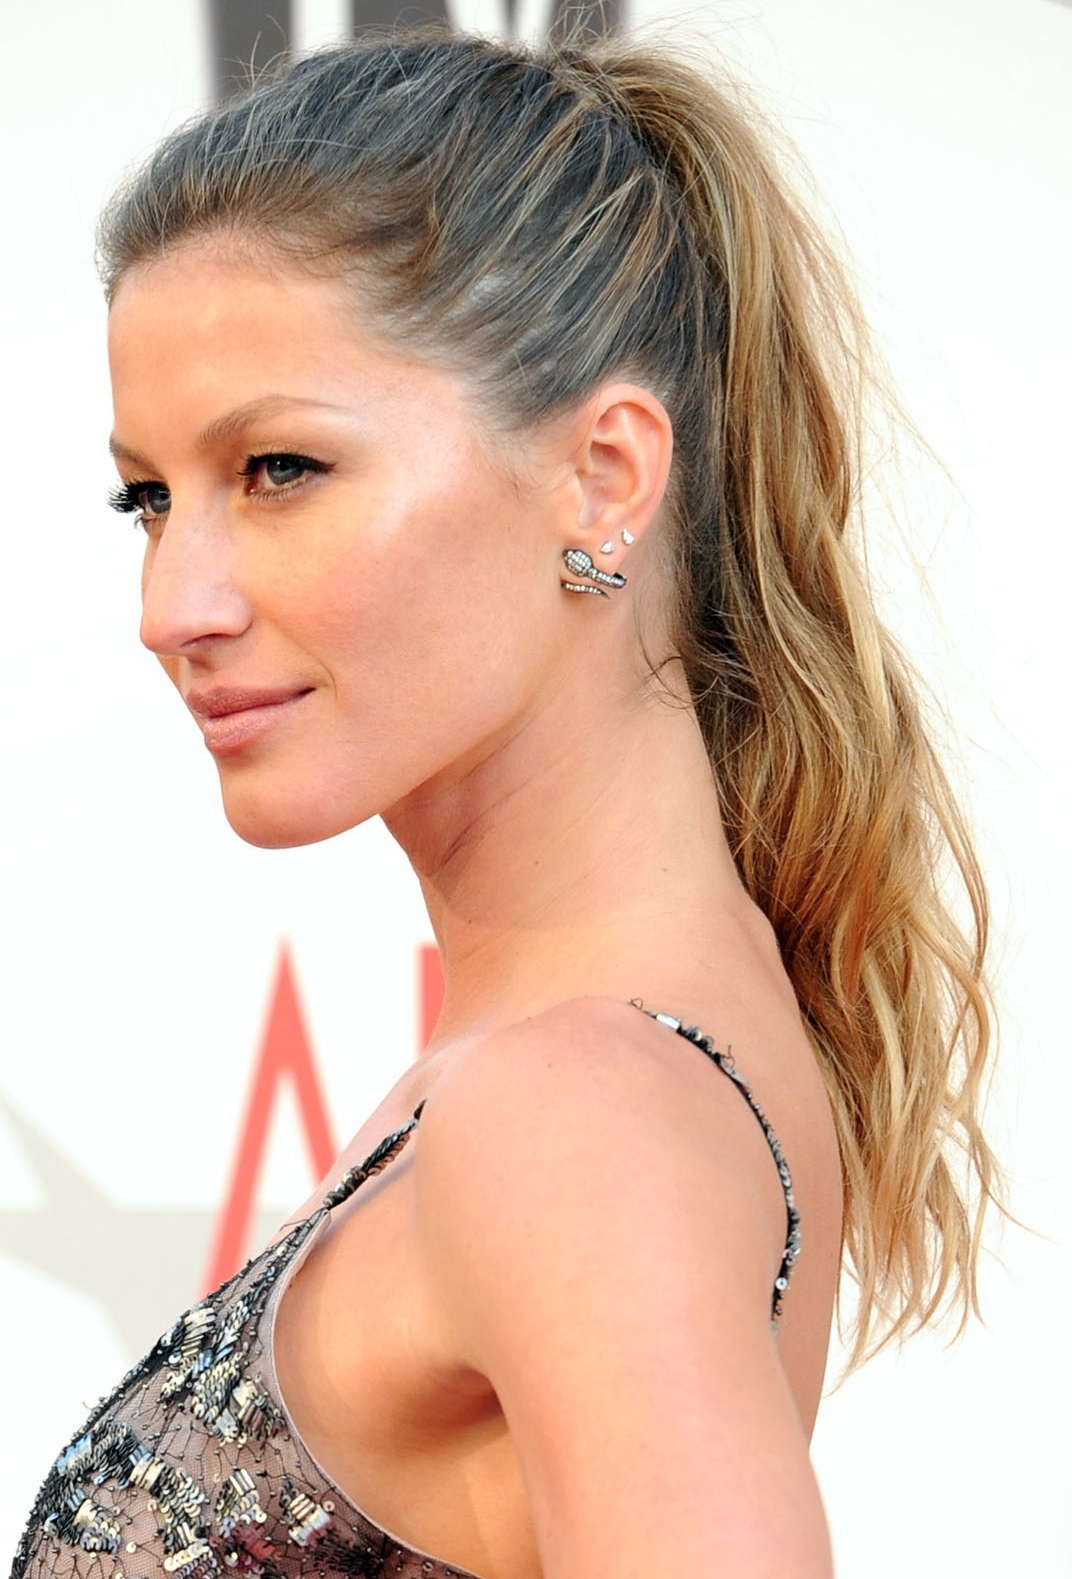 Hairstyles for prom   hairstyles 2013